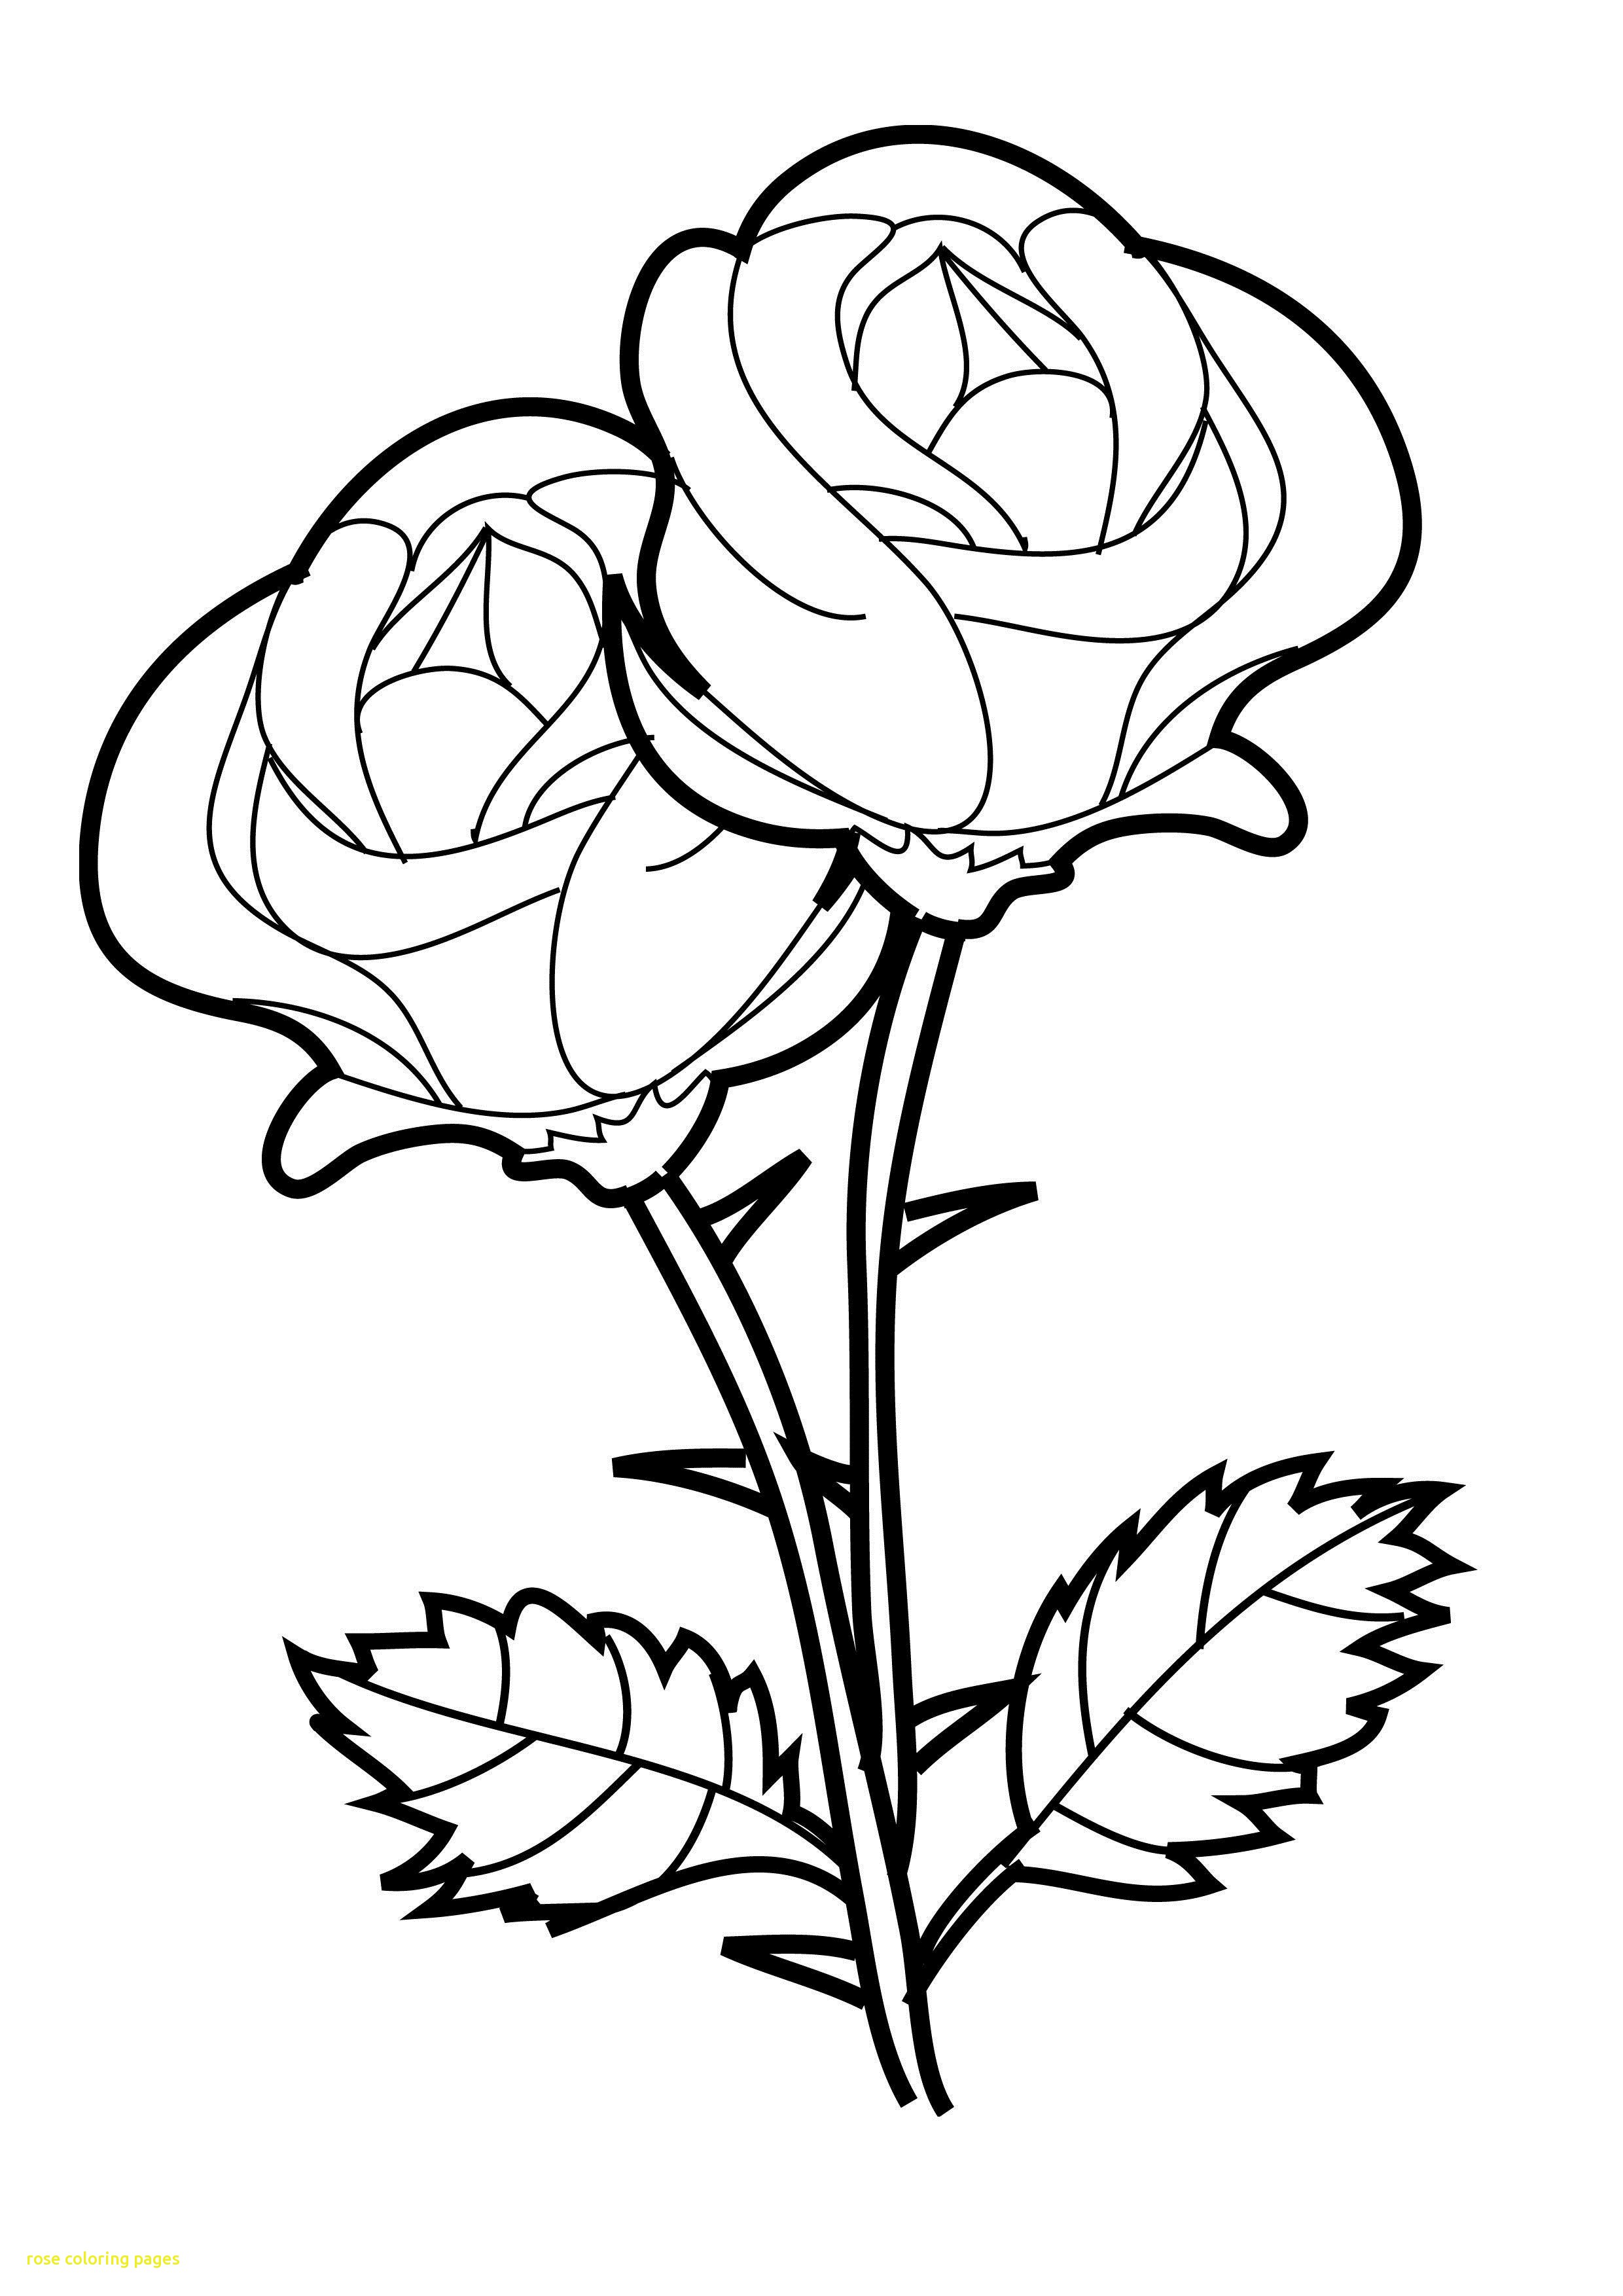 2480x3508 Rose Coloring Pages Free Printable Roses On Birdhouse